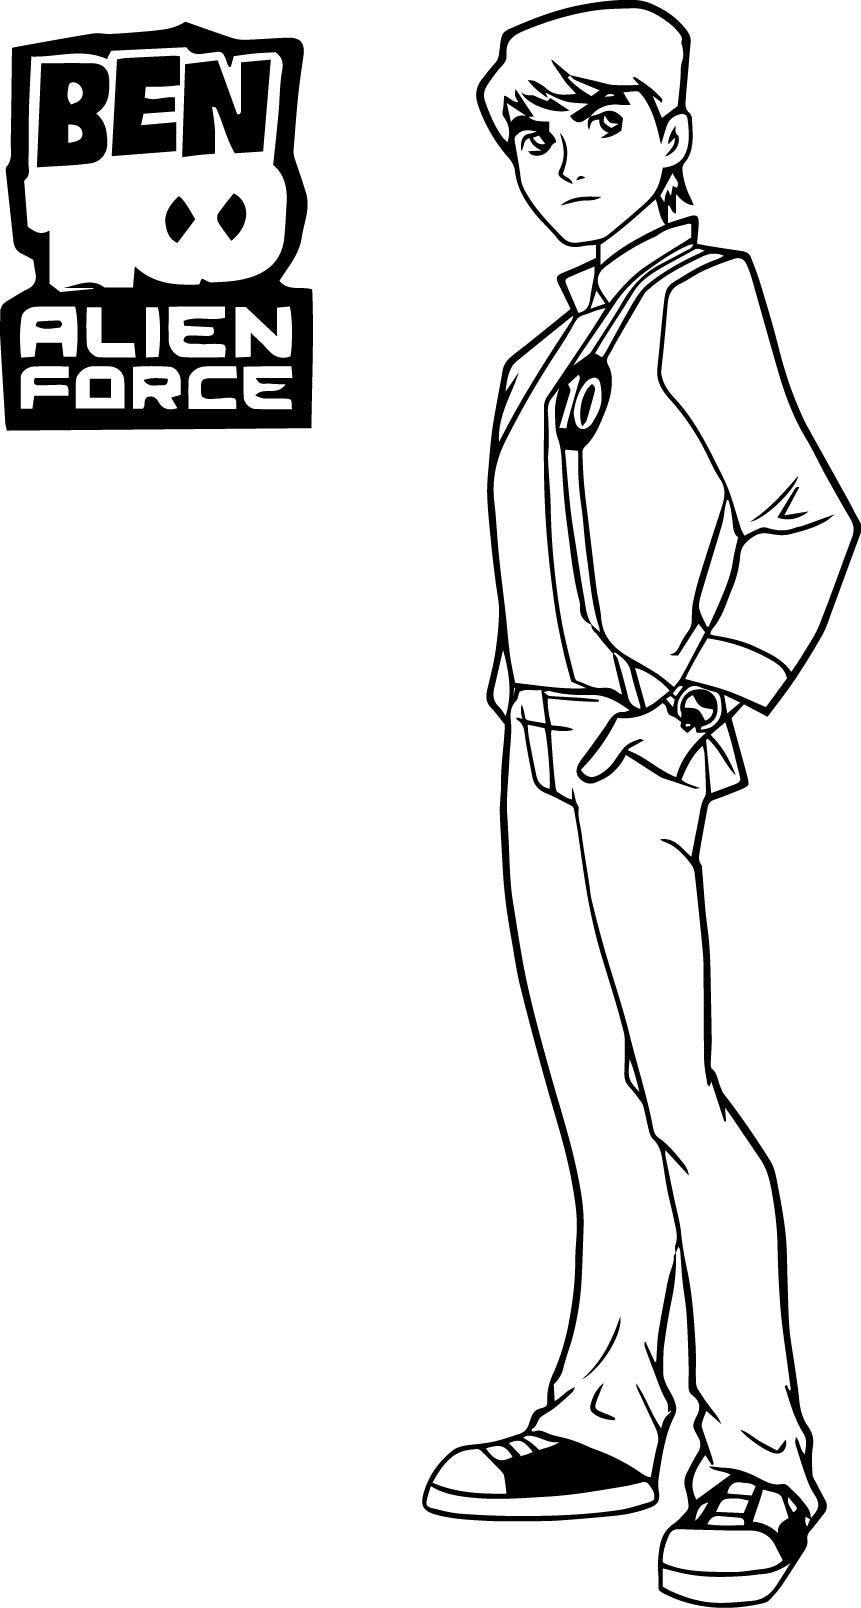 Ben 10 Alien Force Wecoloringpage Coloring Page